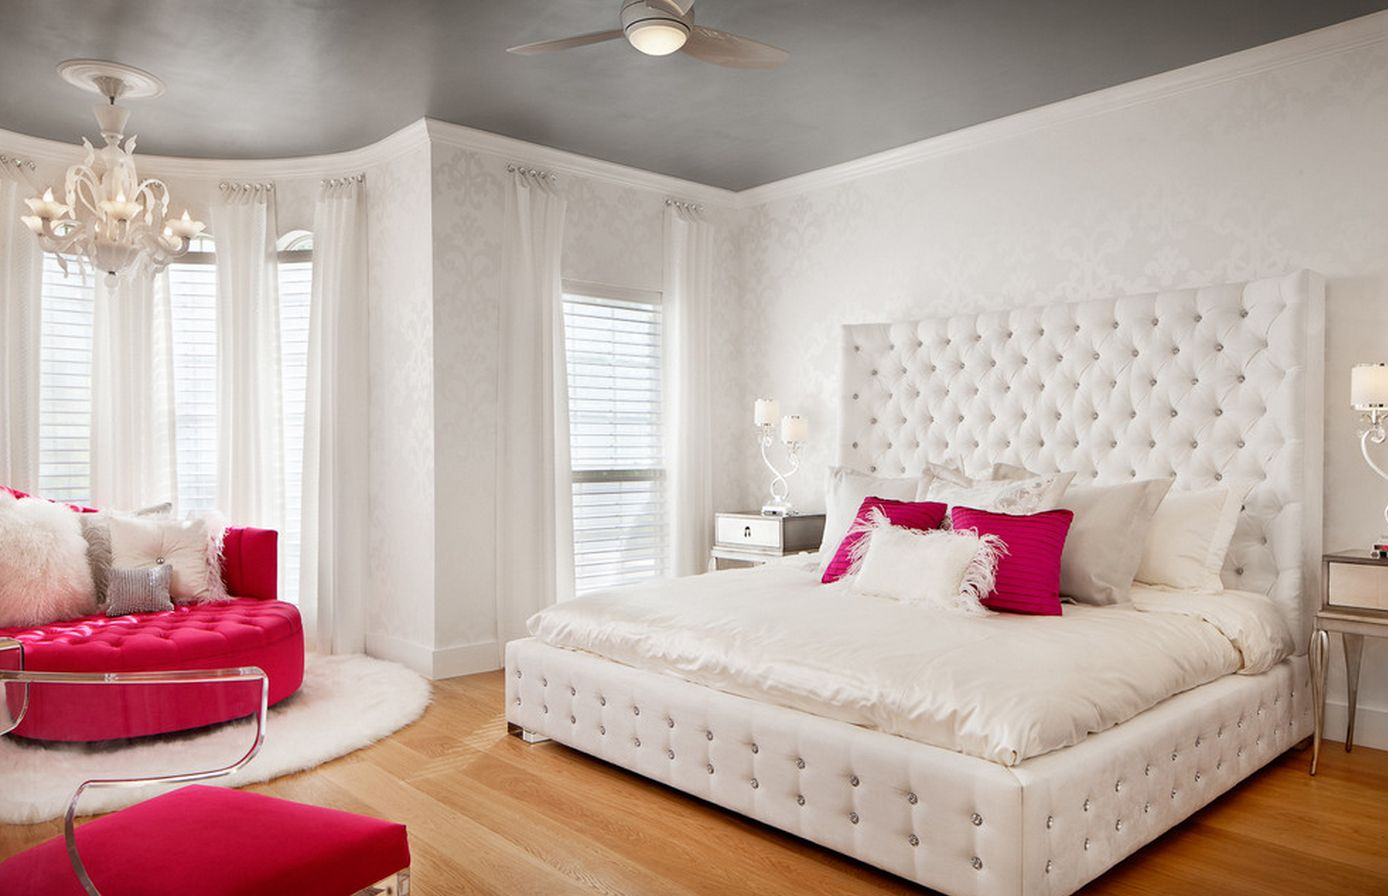 Luxury bedrooms for teenage girls - Beautiful Bed Bedroom Classy Cozy Cute Decor Decoration Teenage Girl